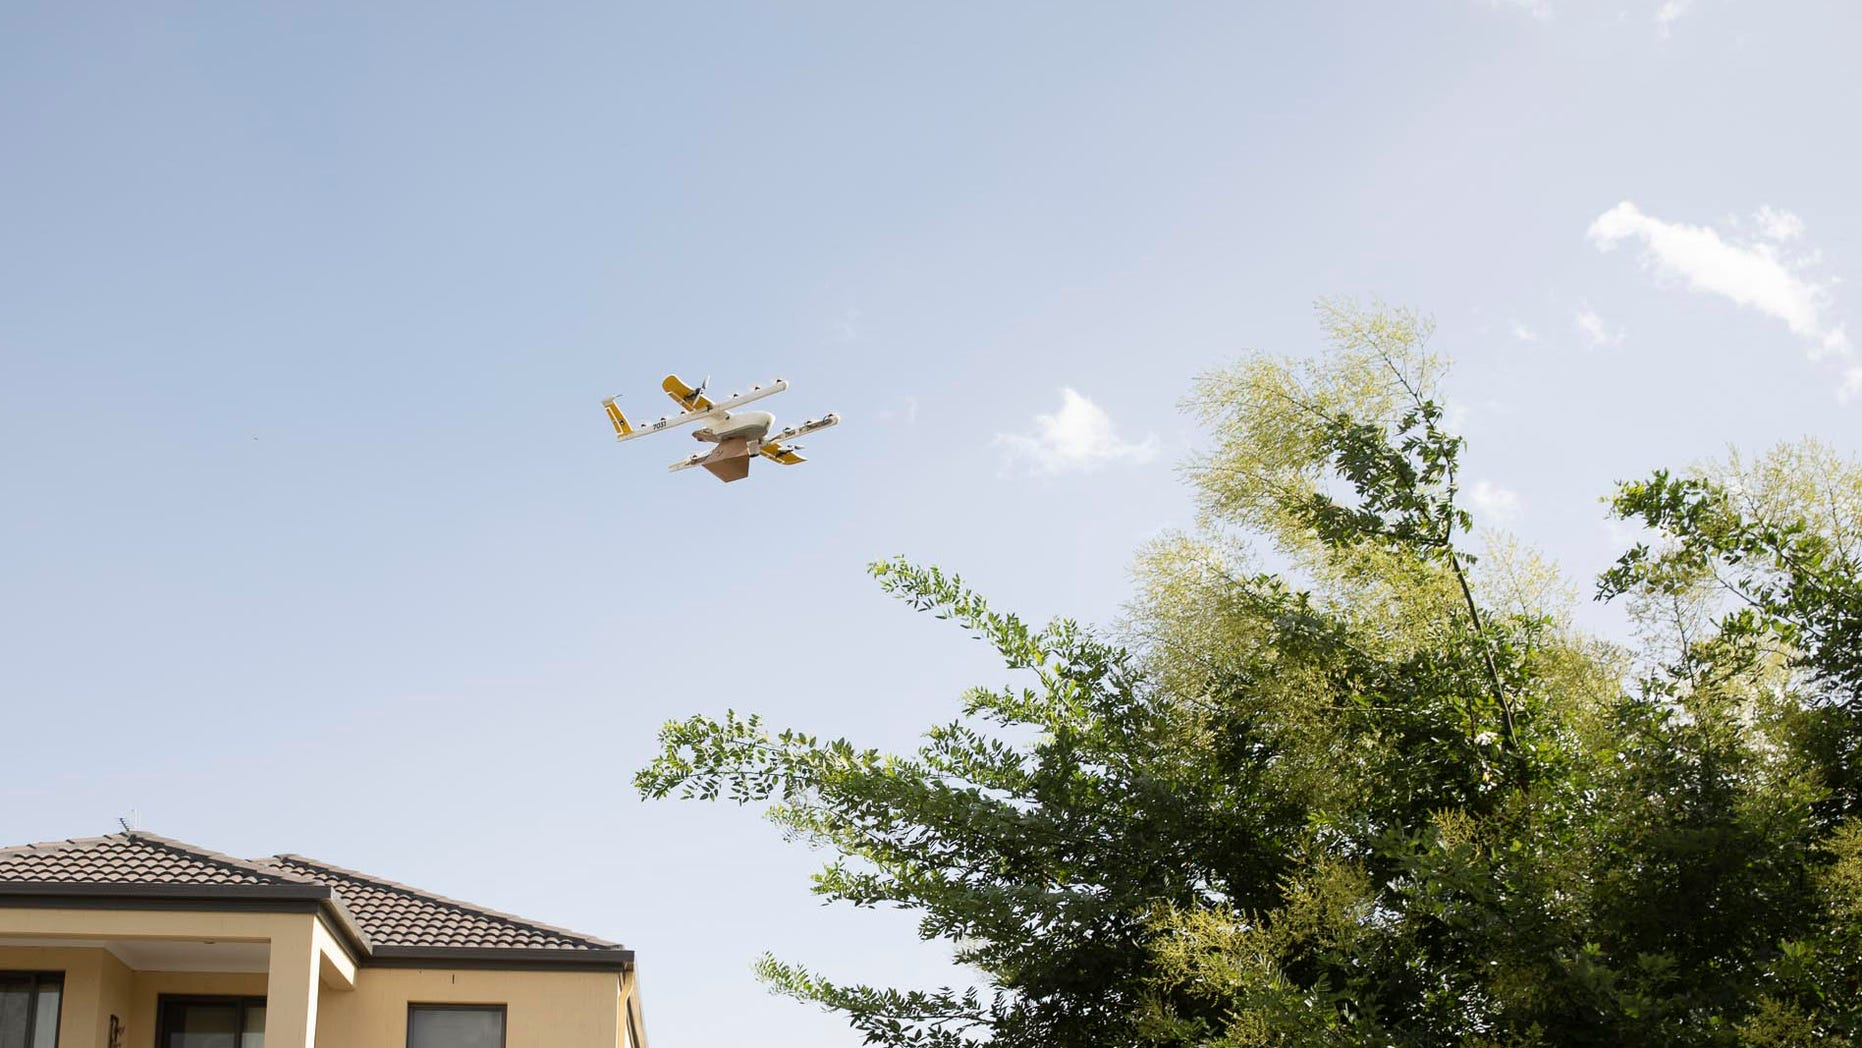 Project Wing launched its first commercial drone delivery service in Australia's capital. The drones lower small items to the front yards of eligible residences by string.